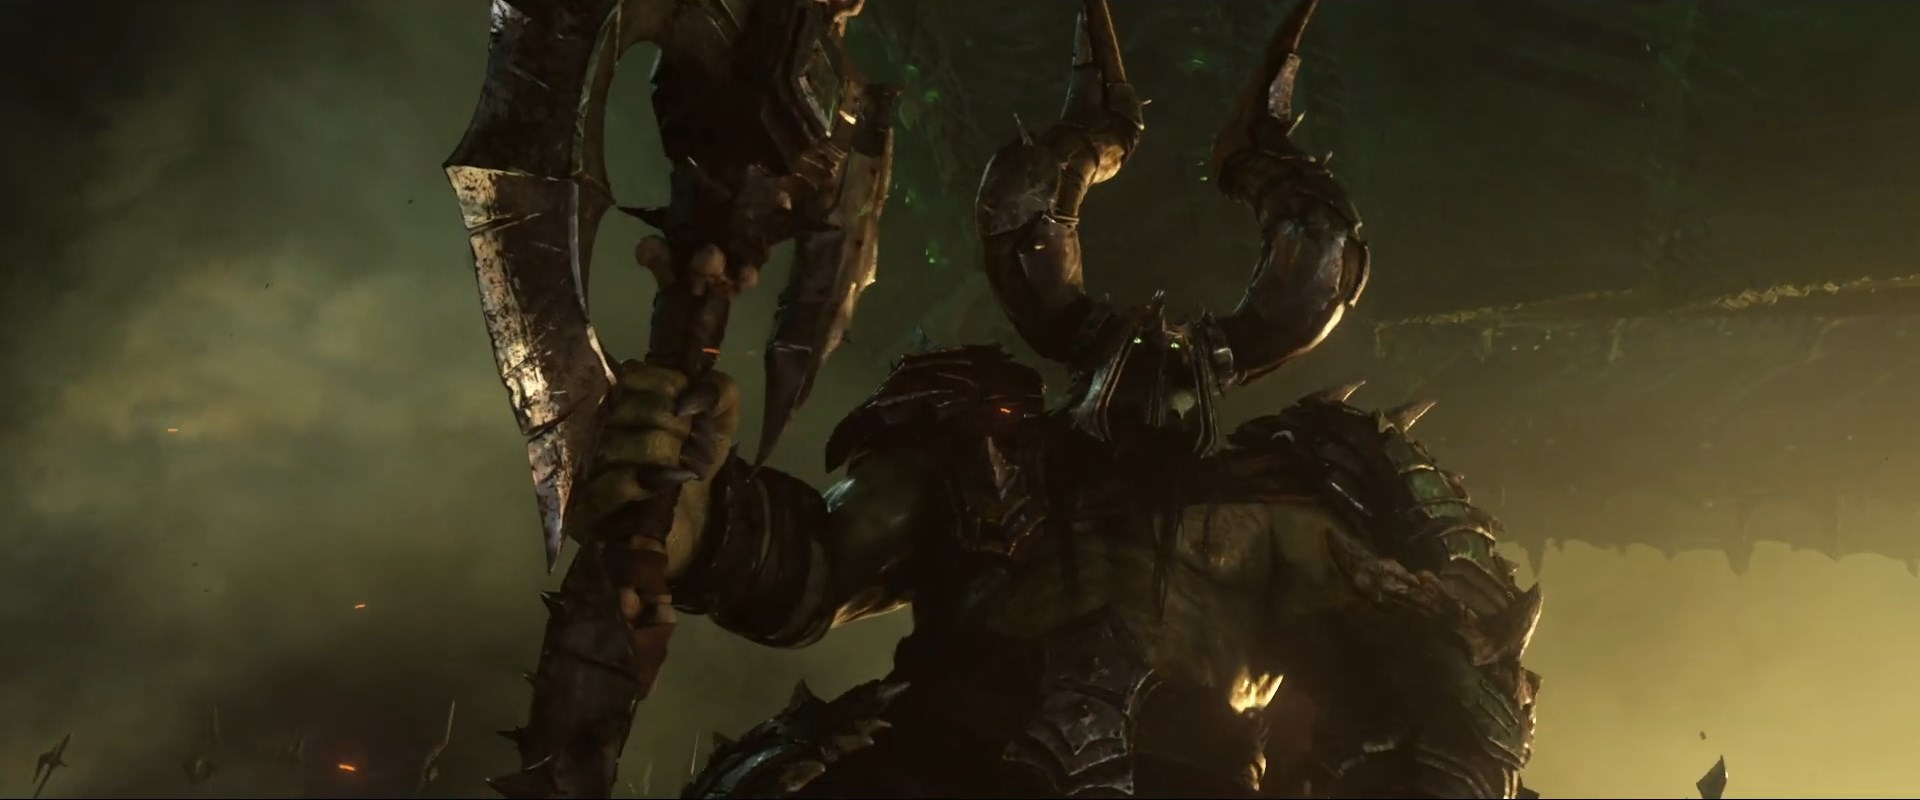 World of Warcraft Shadowlands Launch Cinematic: Beyond the Veil